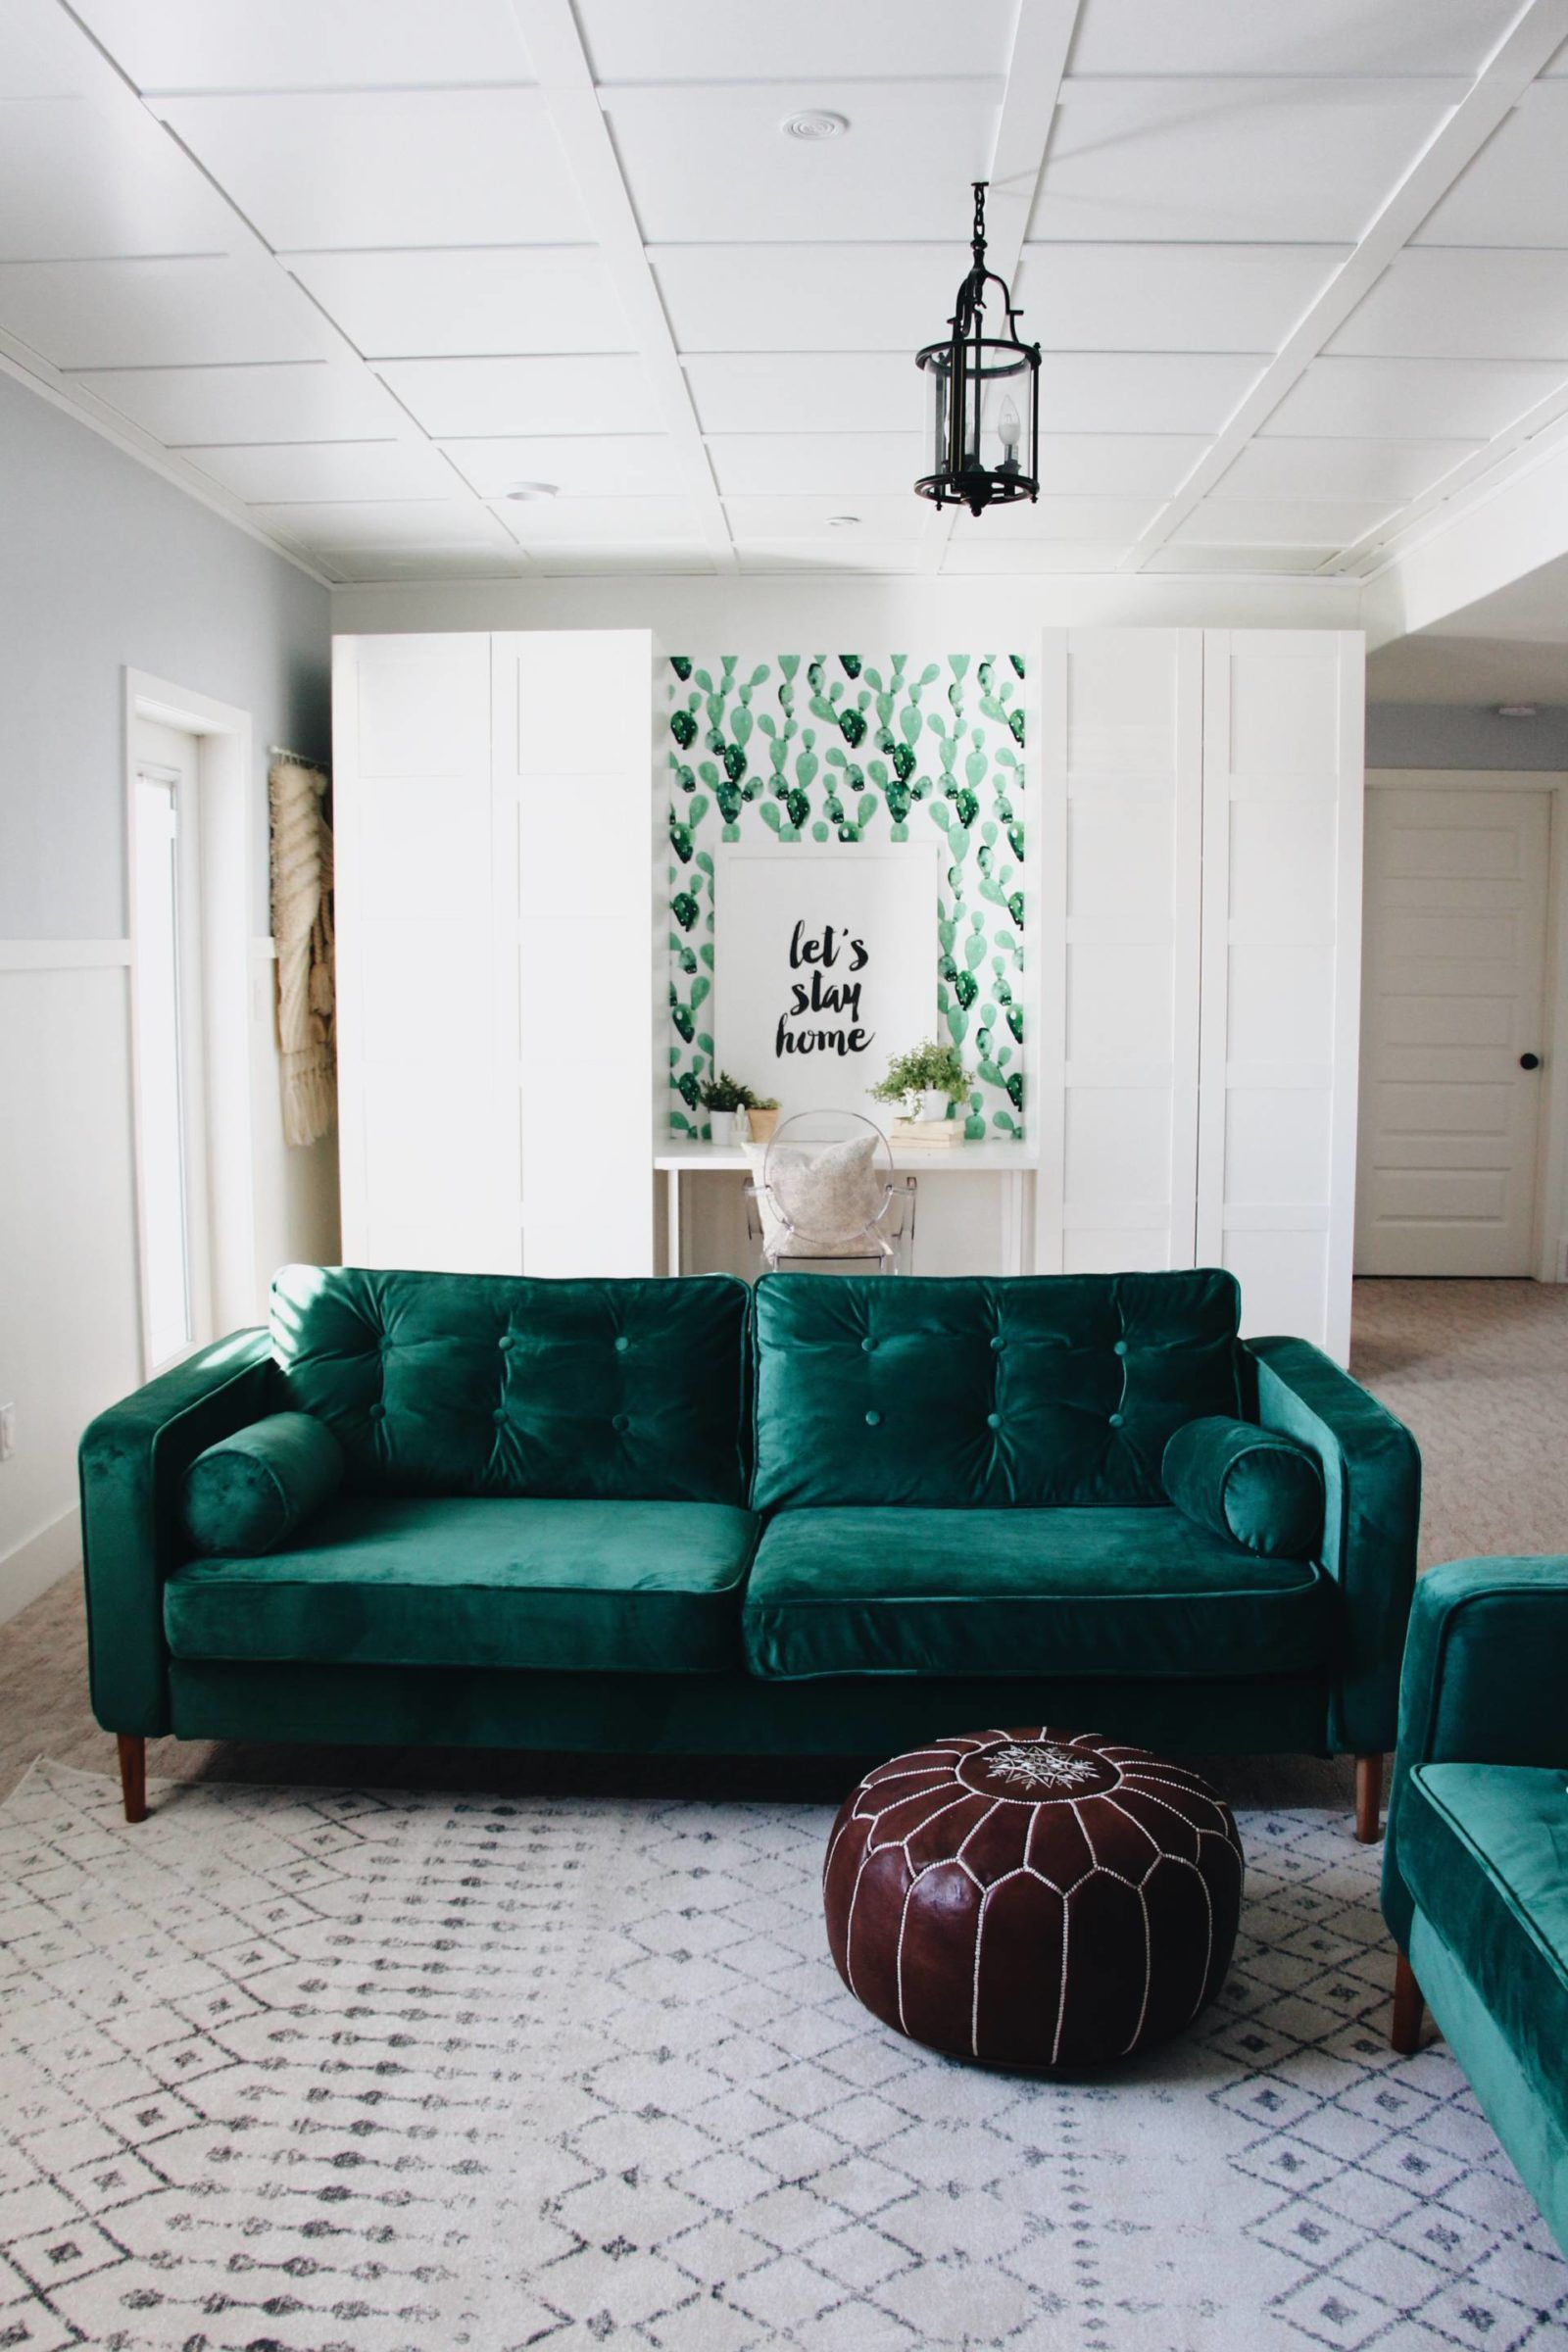 Forest Green Velvet Statement Two Seater Couch Green Room Decor